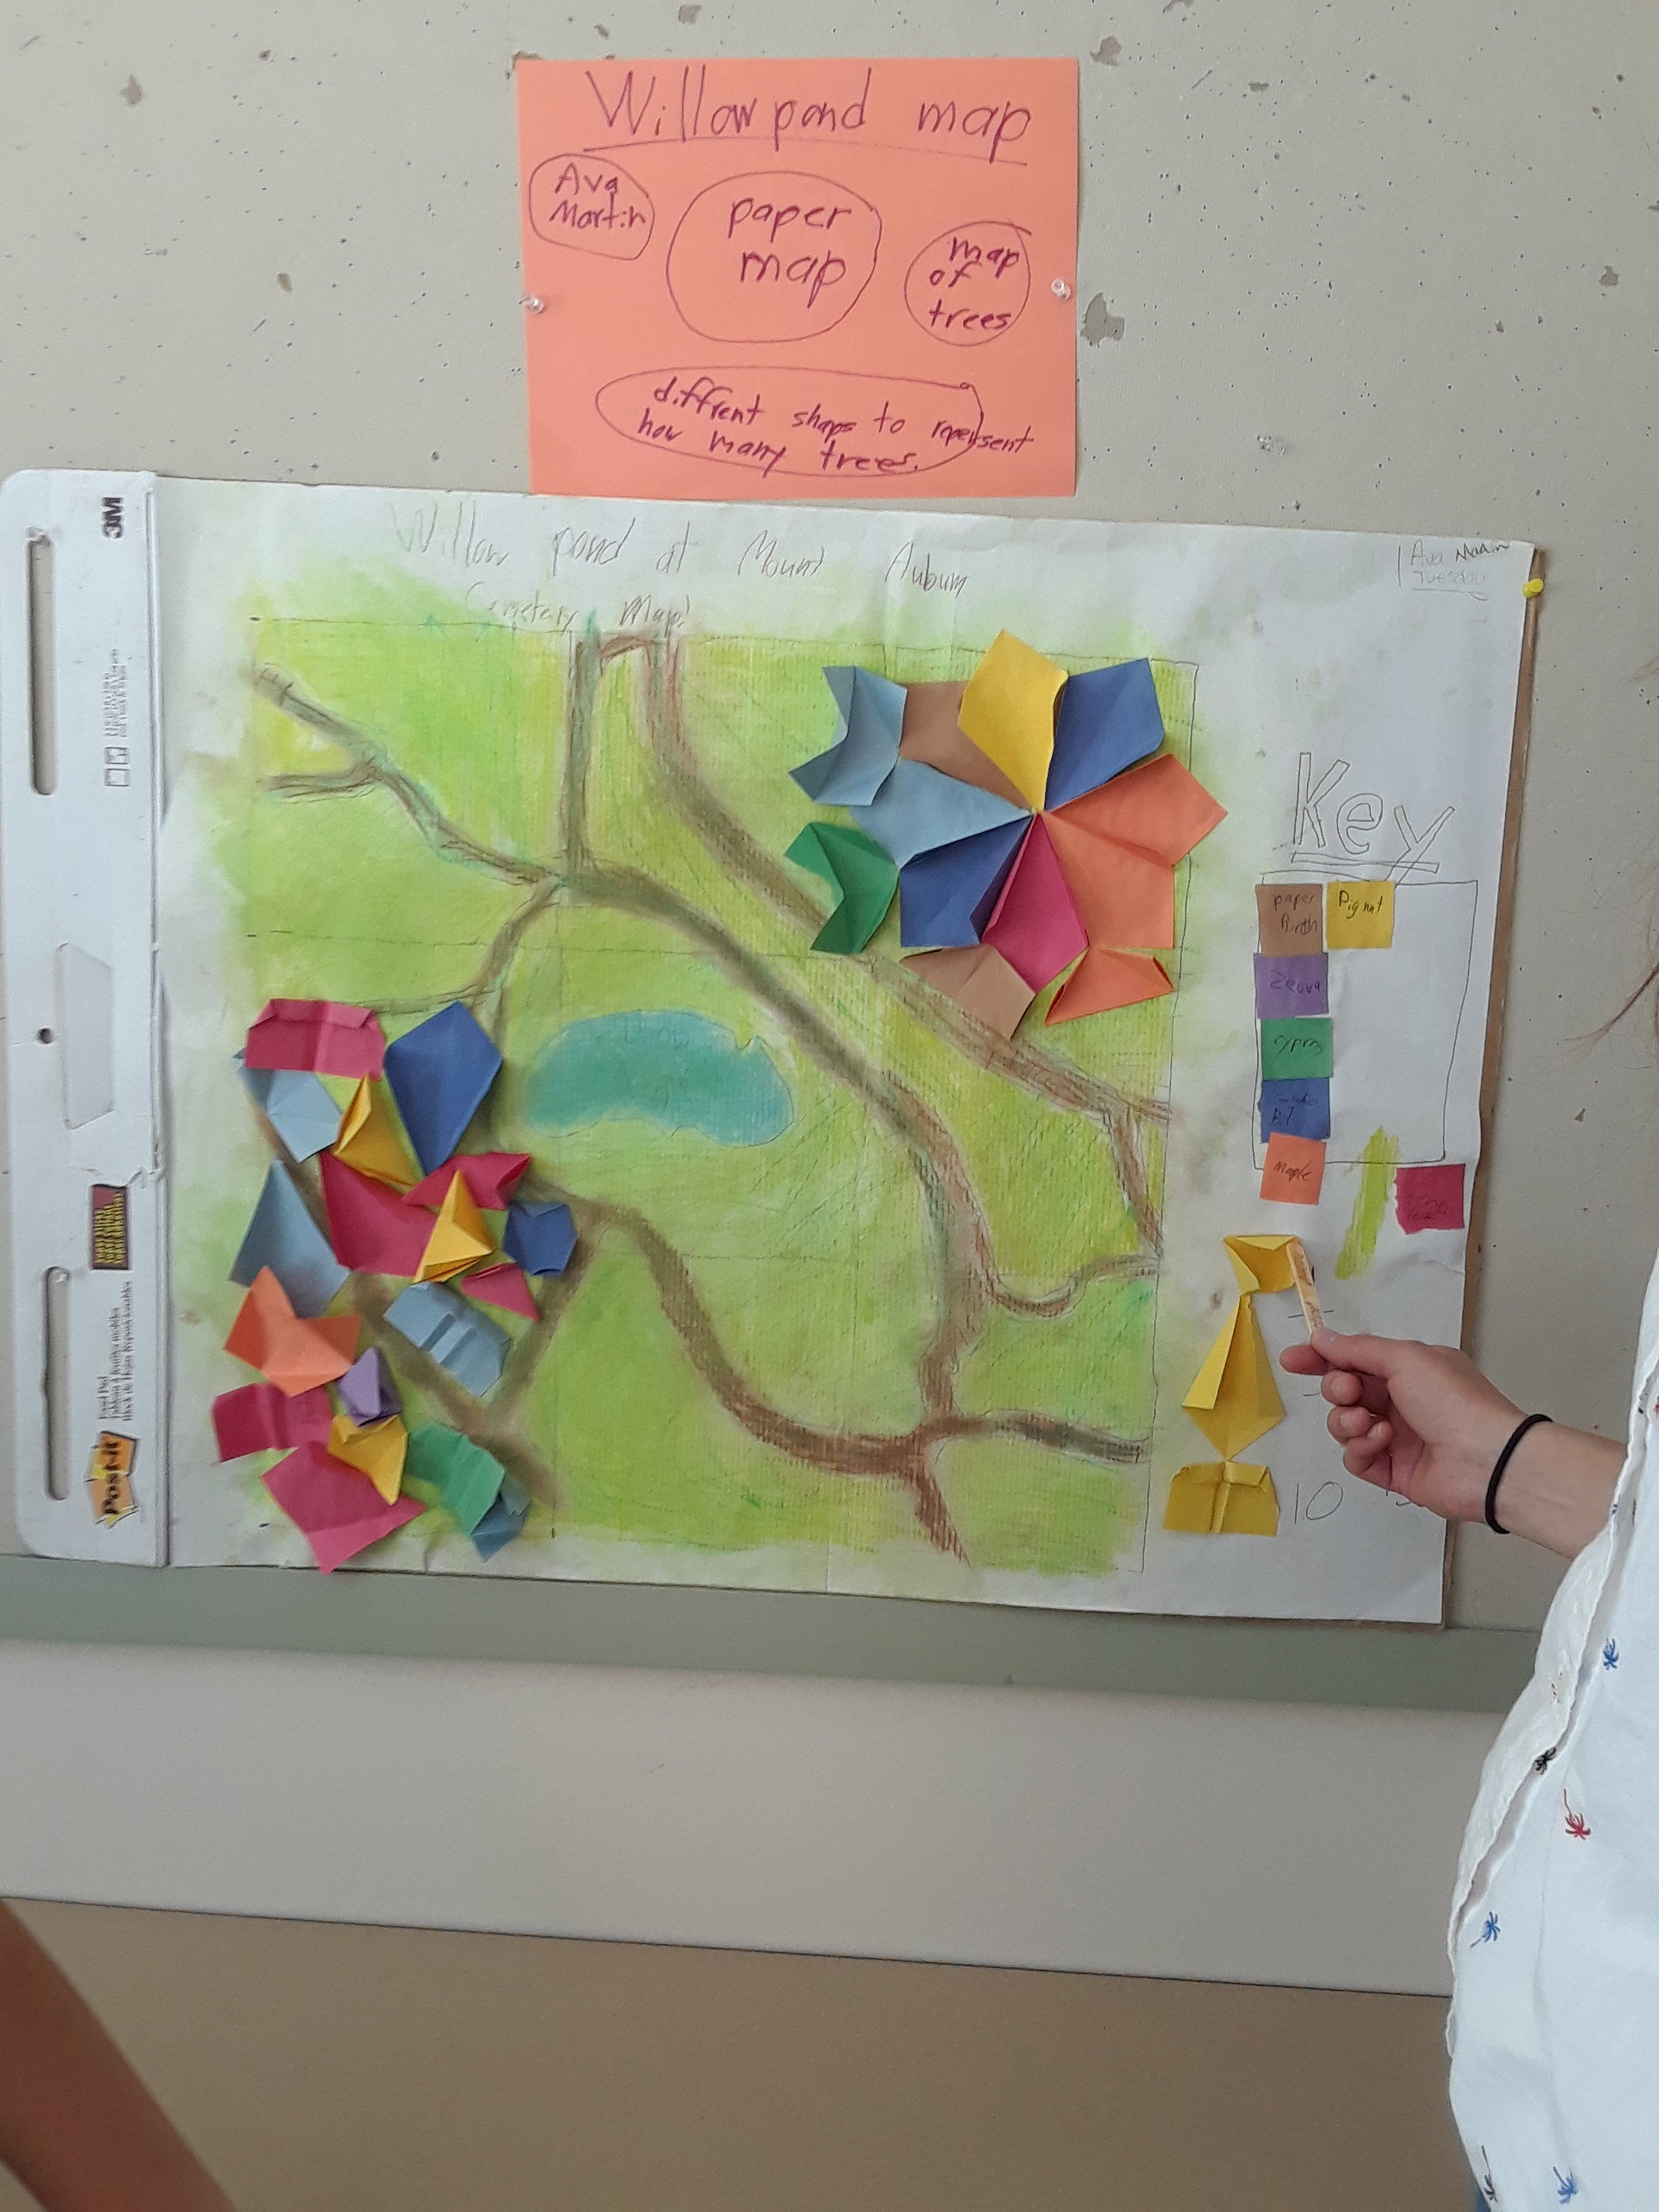 A scaled map of Willow Pond and representation of trees found in the area.